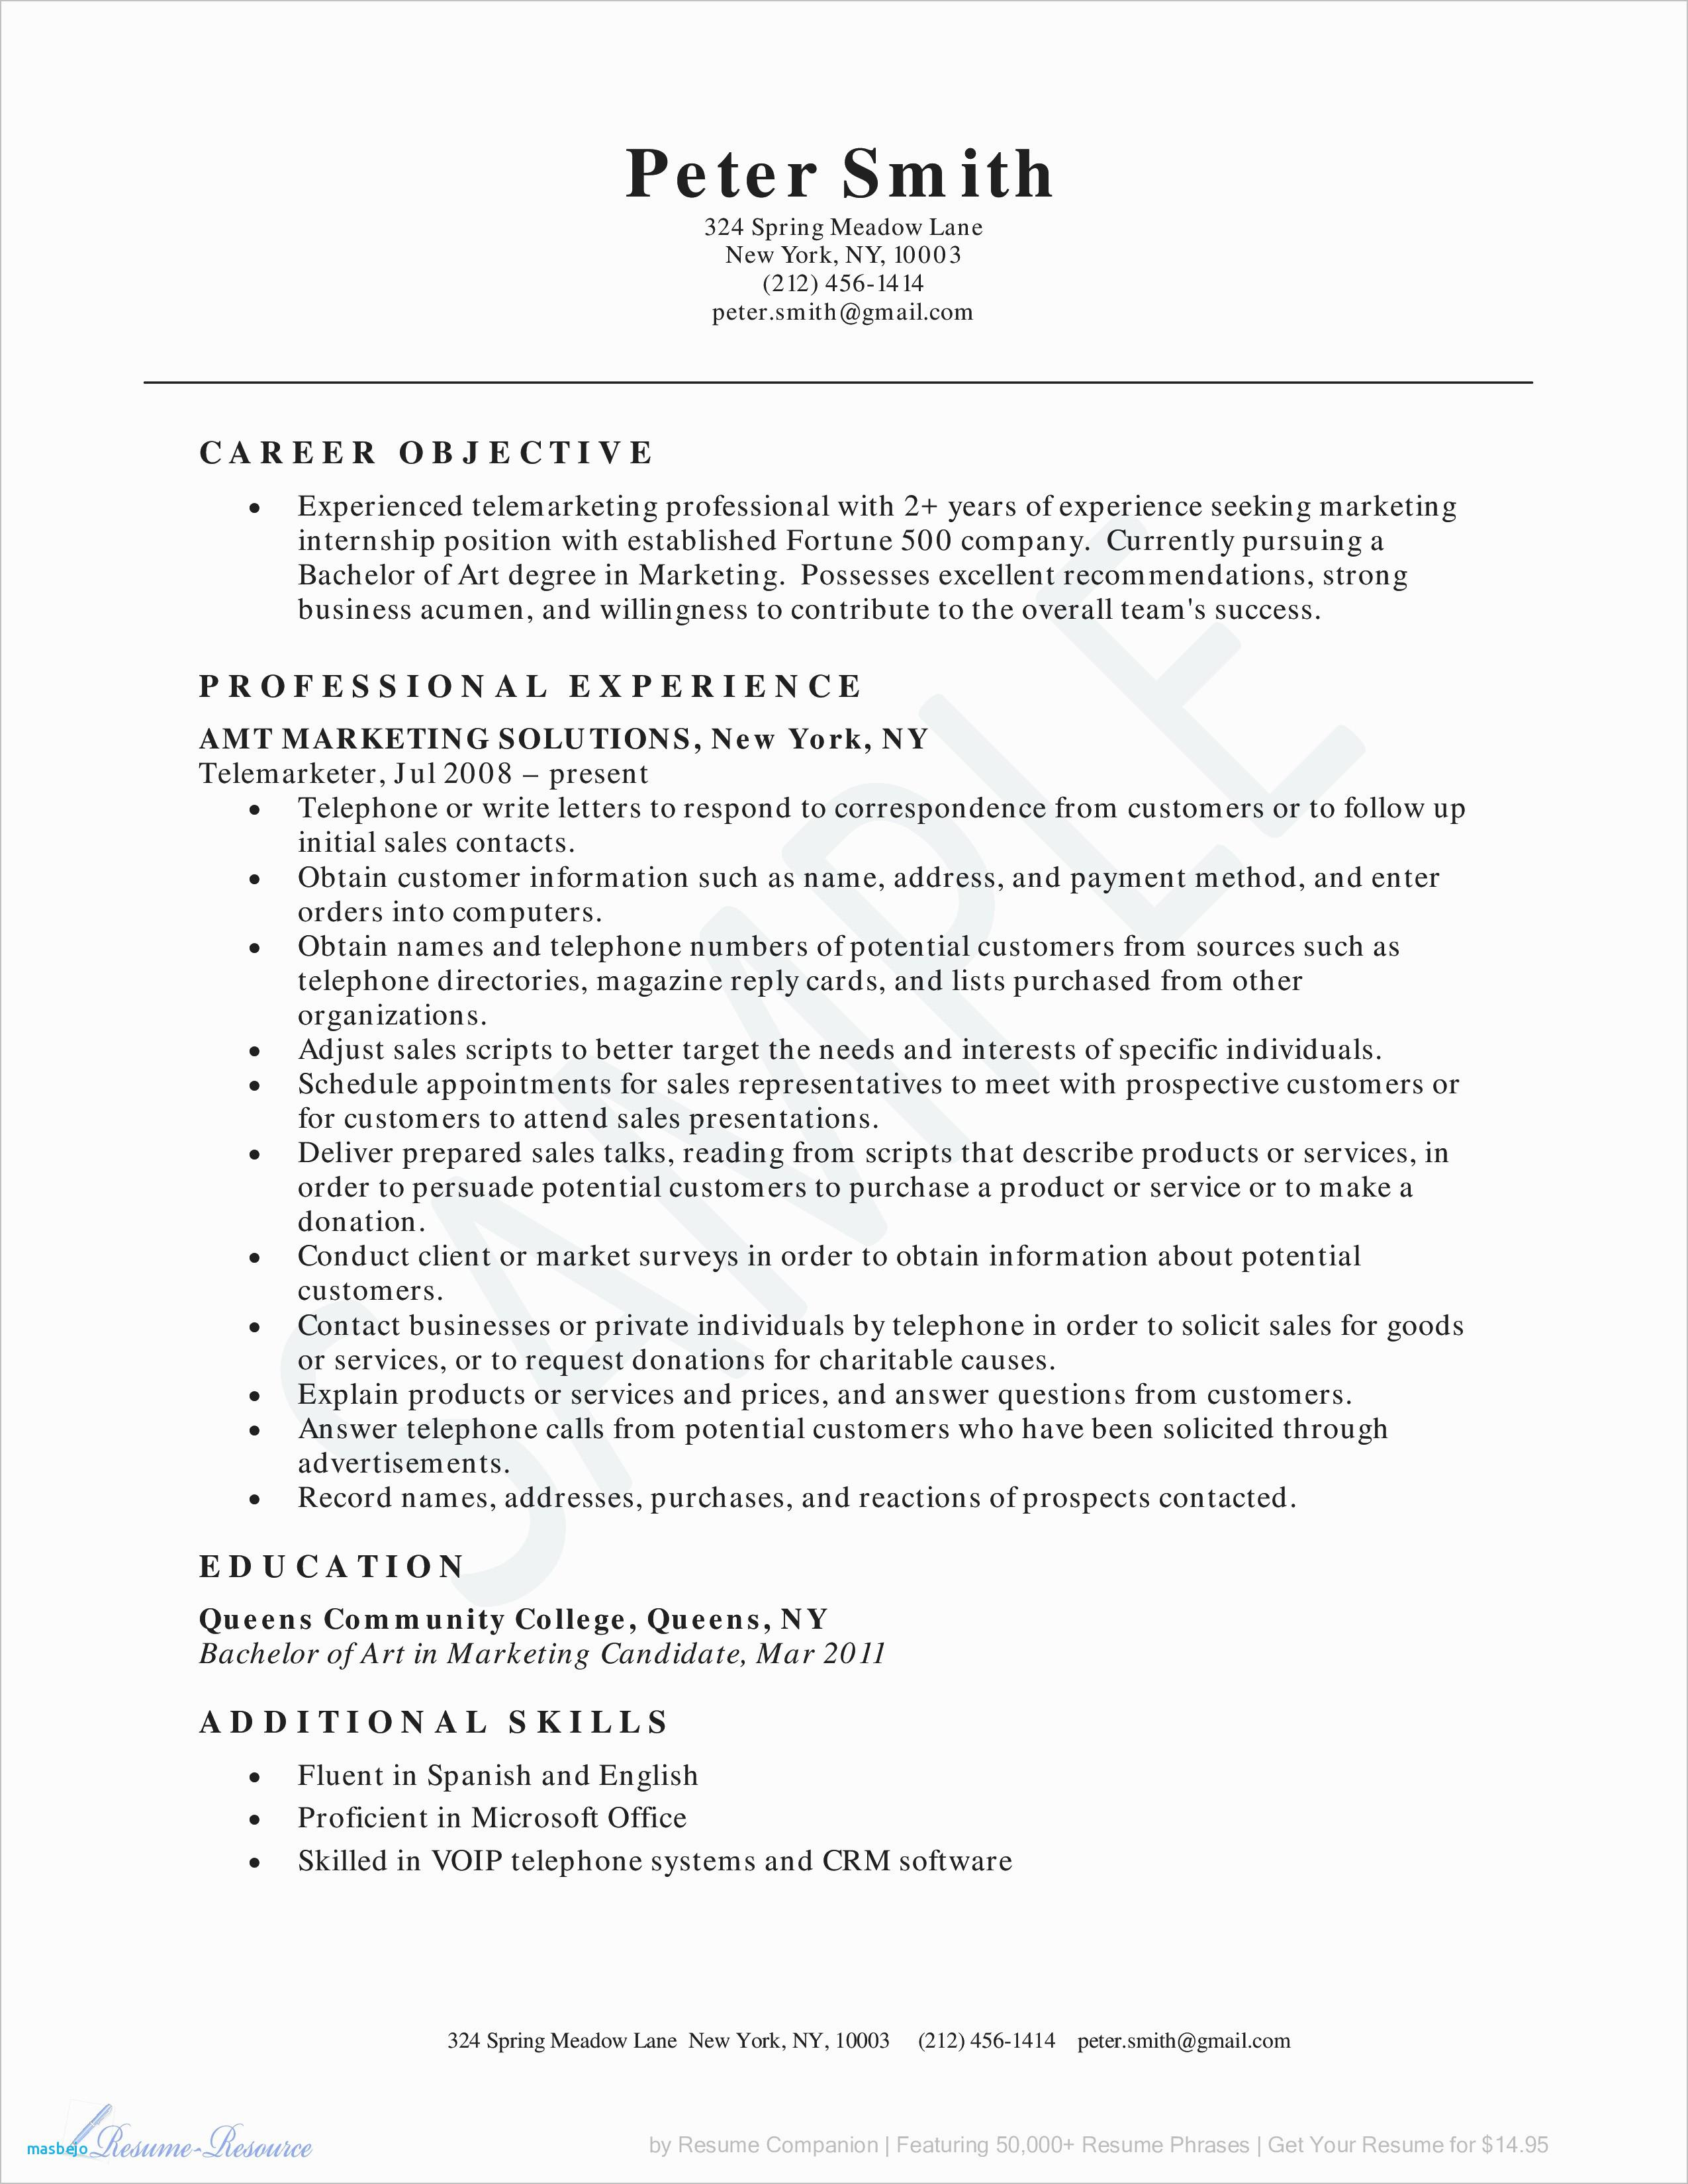 Resume Introduction Examples - Resume Introduction Examples Inspirational Resume Introduction